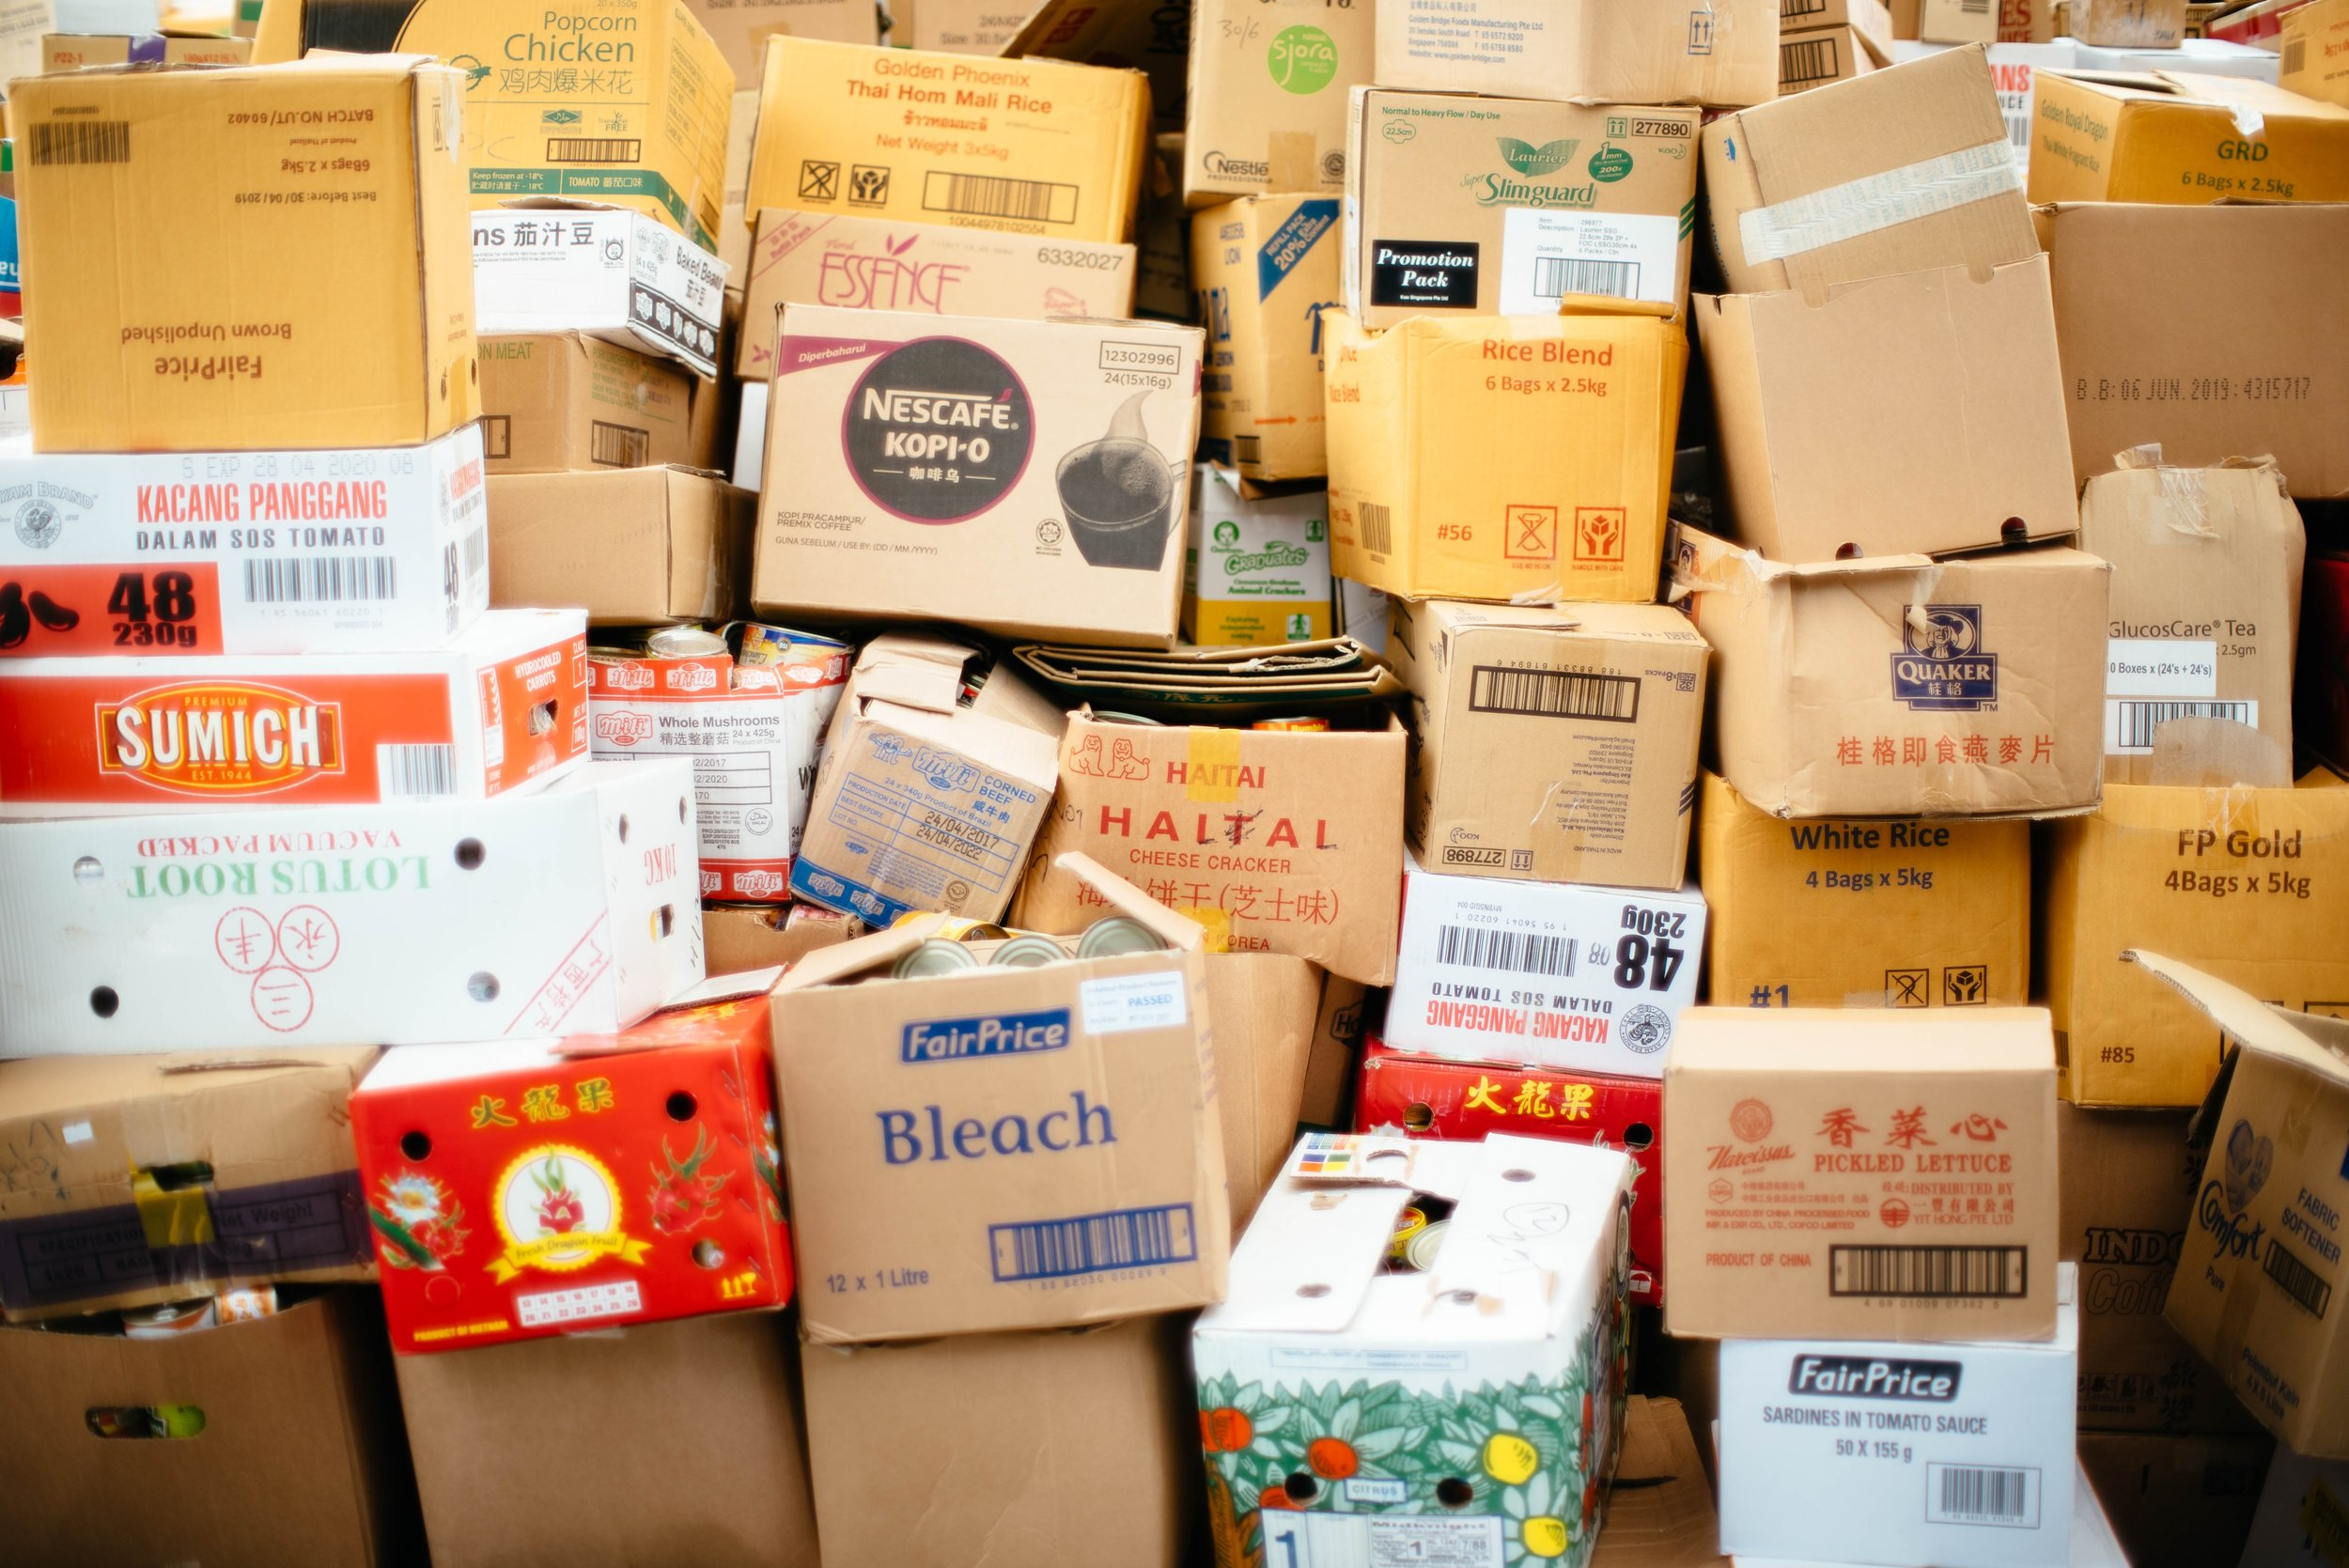 You can throw all your stuff in random boxes and move your mess, or you can use this time to purge and sort and turn your move into an opportunity to get more organized. A Moving Coordinator can help with that.